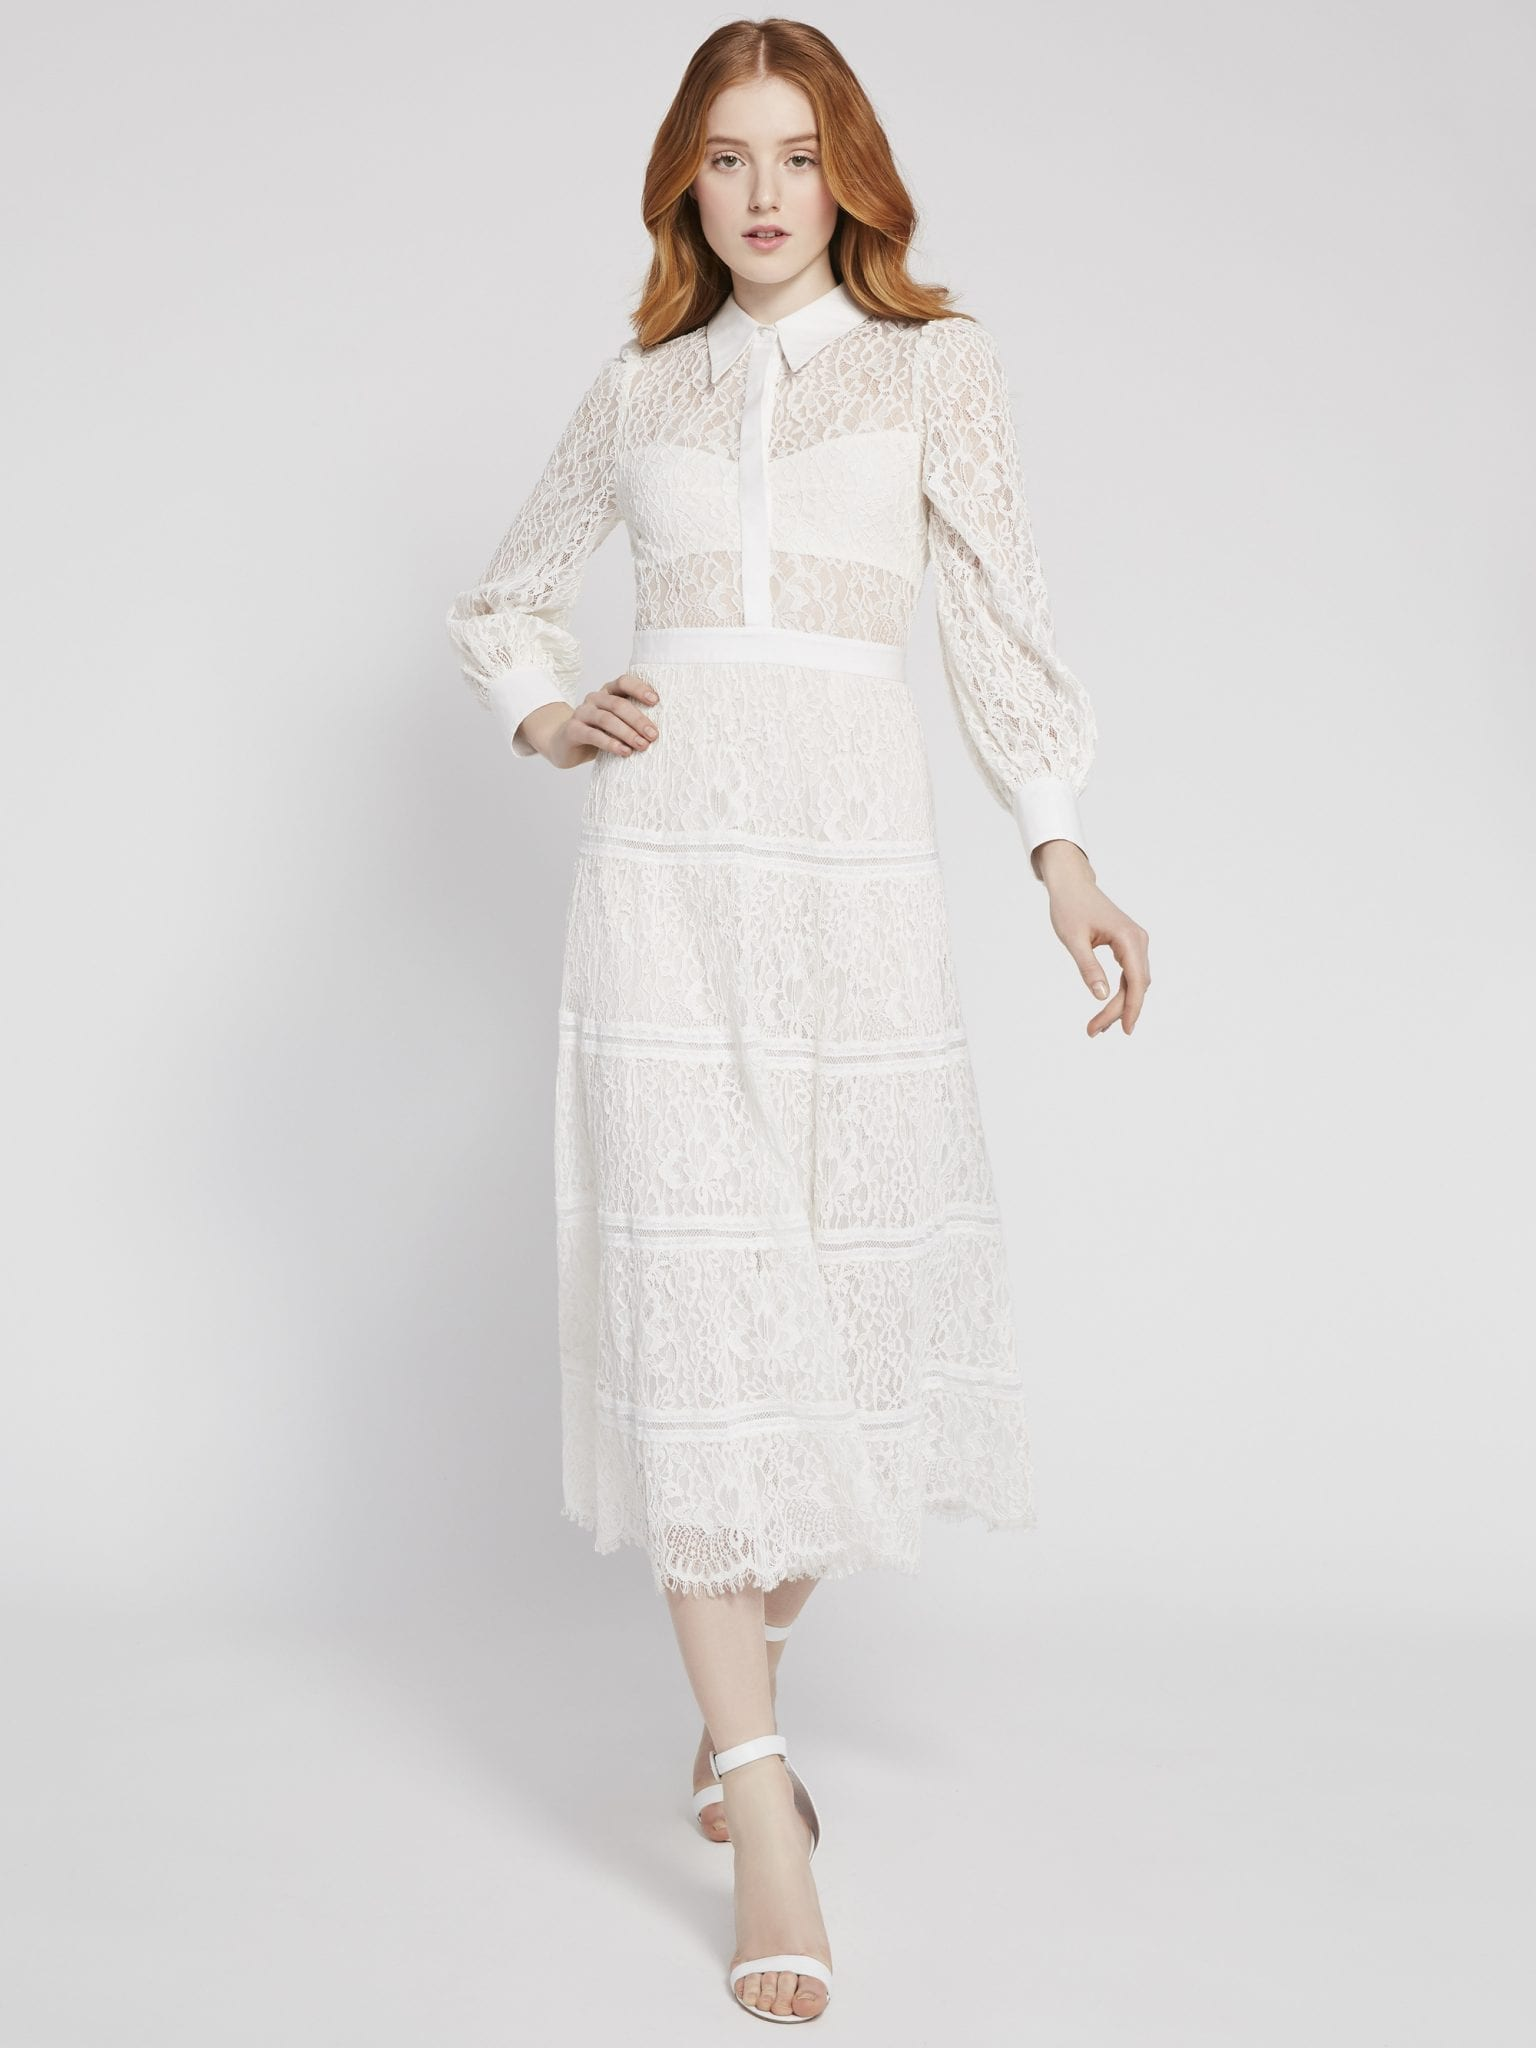 ALICE AND OLIVIA Naya Lace Midi Dress